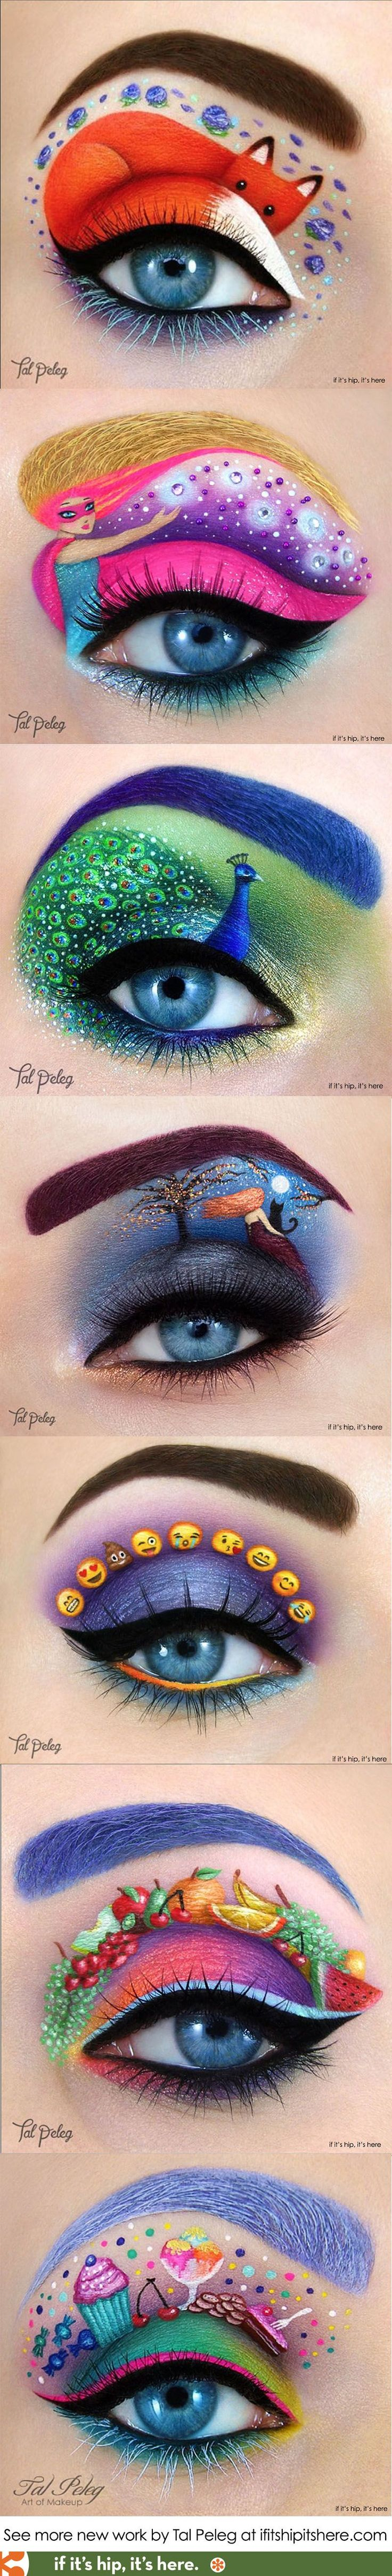 Israeli Makeup Artist Tal Peleg just keeps getting better and better. A look at some of her newer work at  http://www.ifitshipitshere.com/eye-makeup-by-tal-peleg/